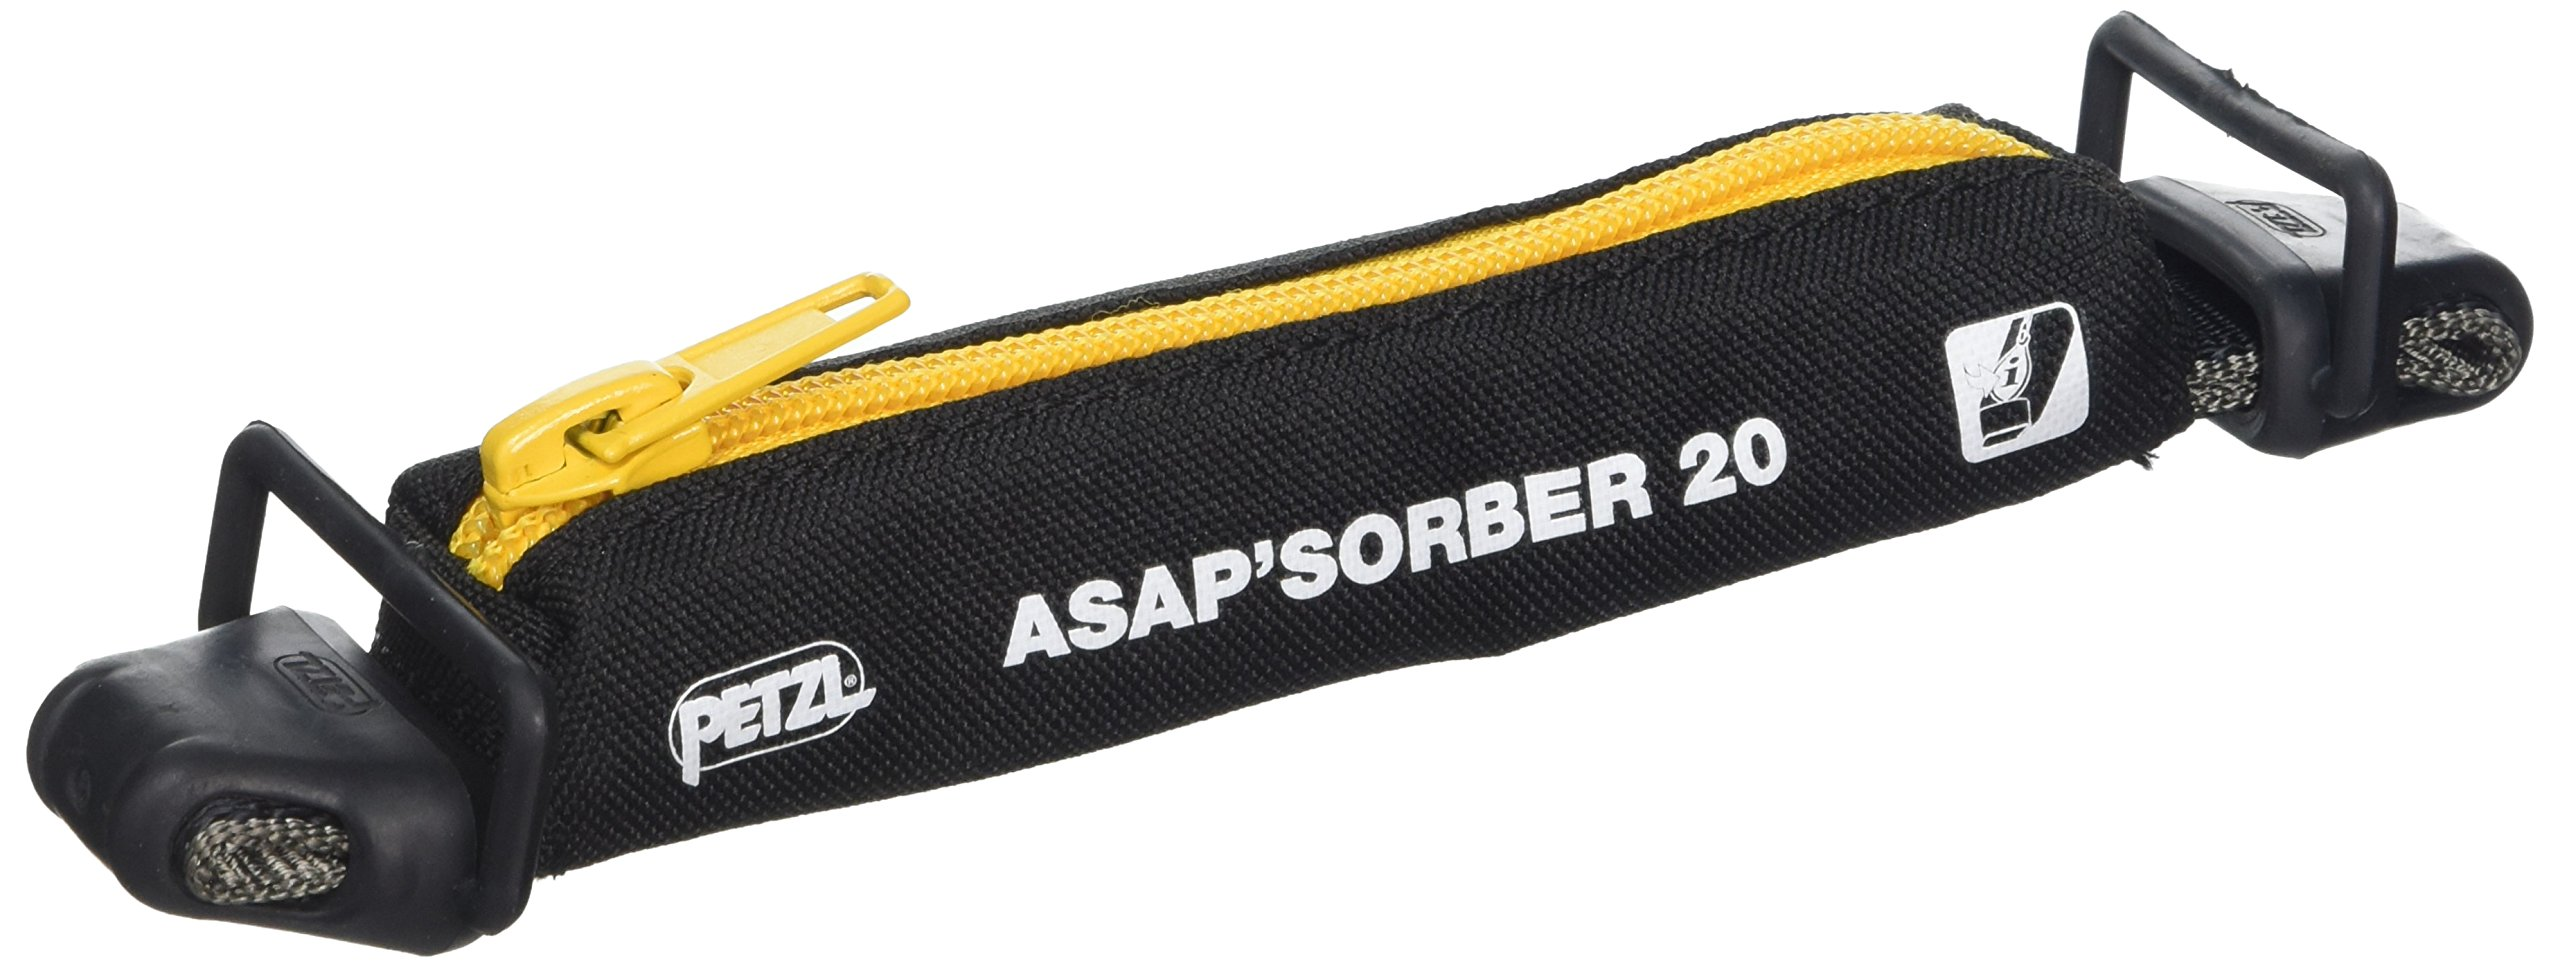 PETZL - ASAP'SORBER, Lanyard with Energy Absorber, 20 cm by PETZL